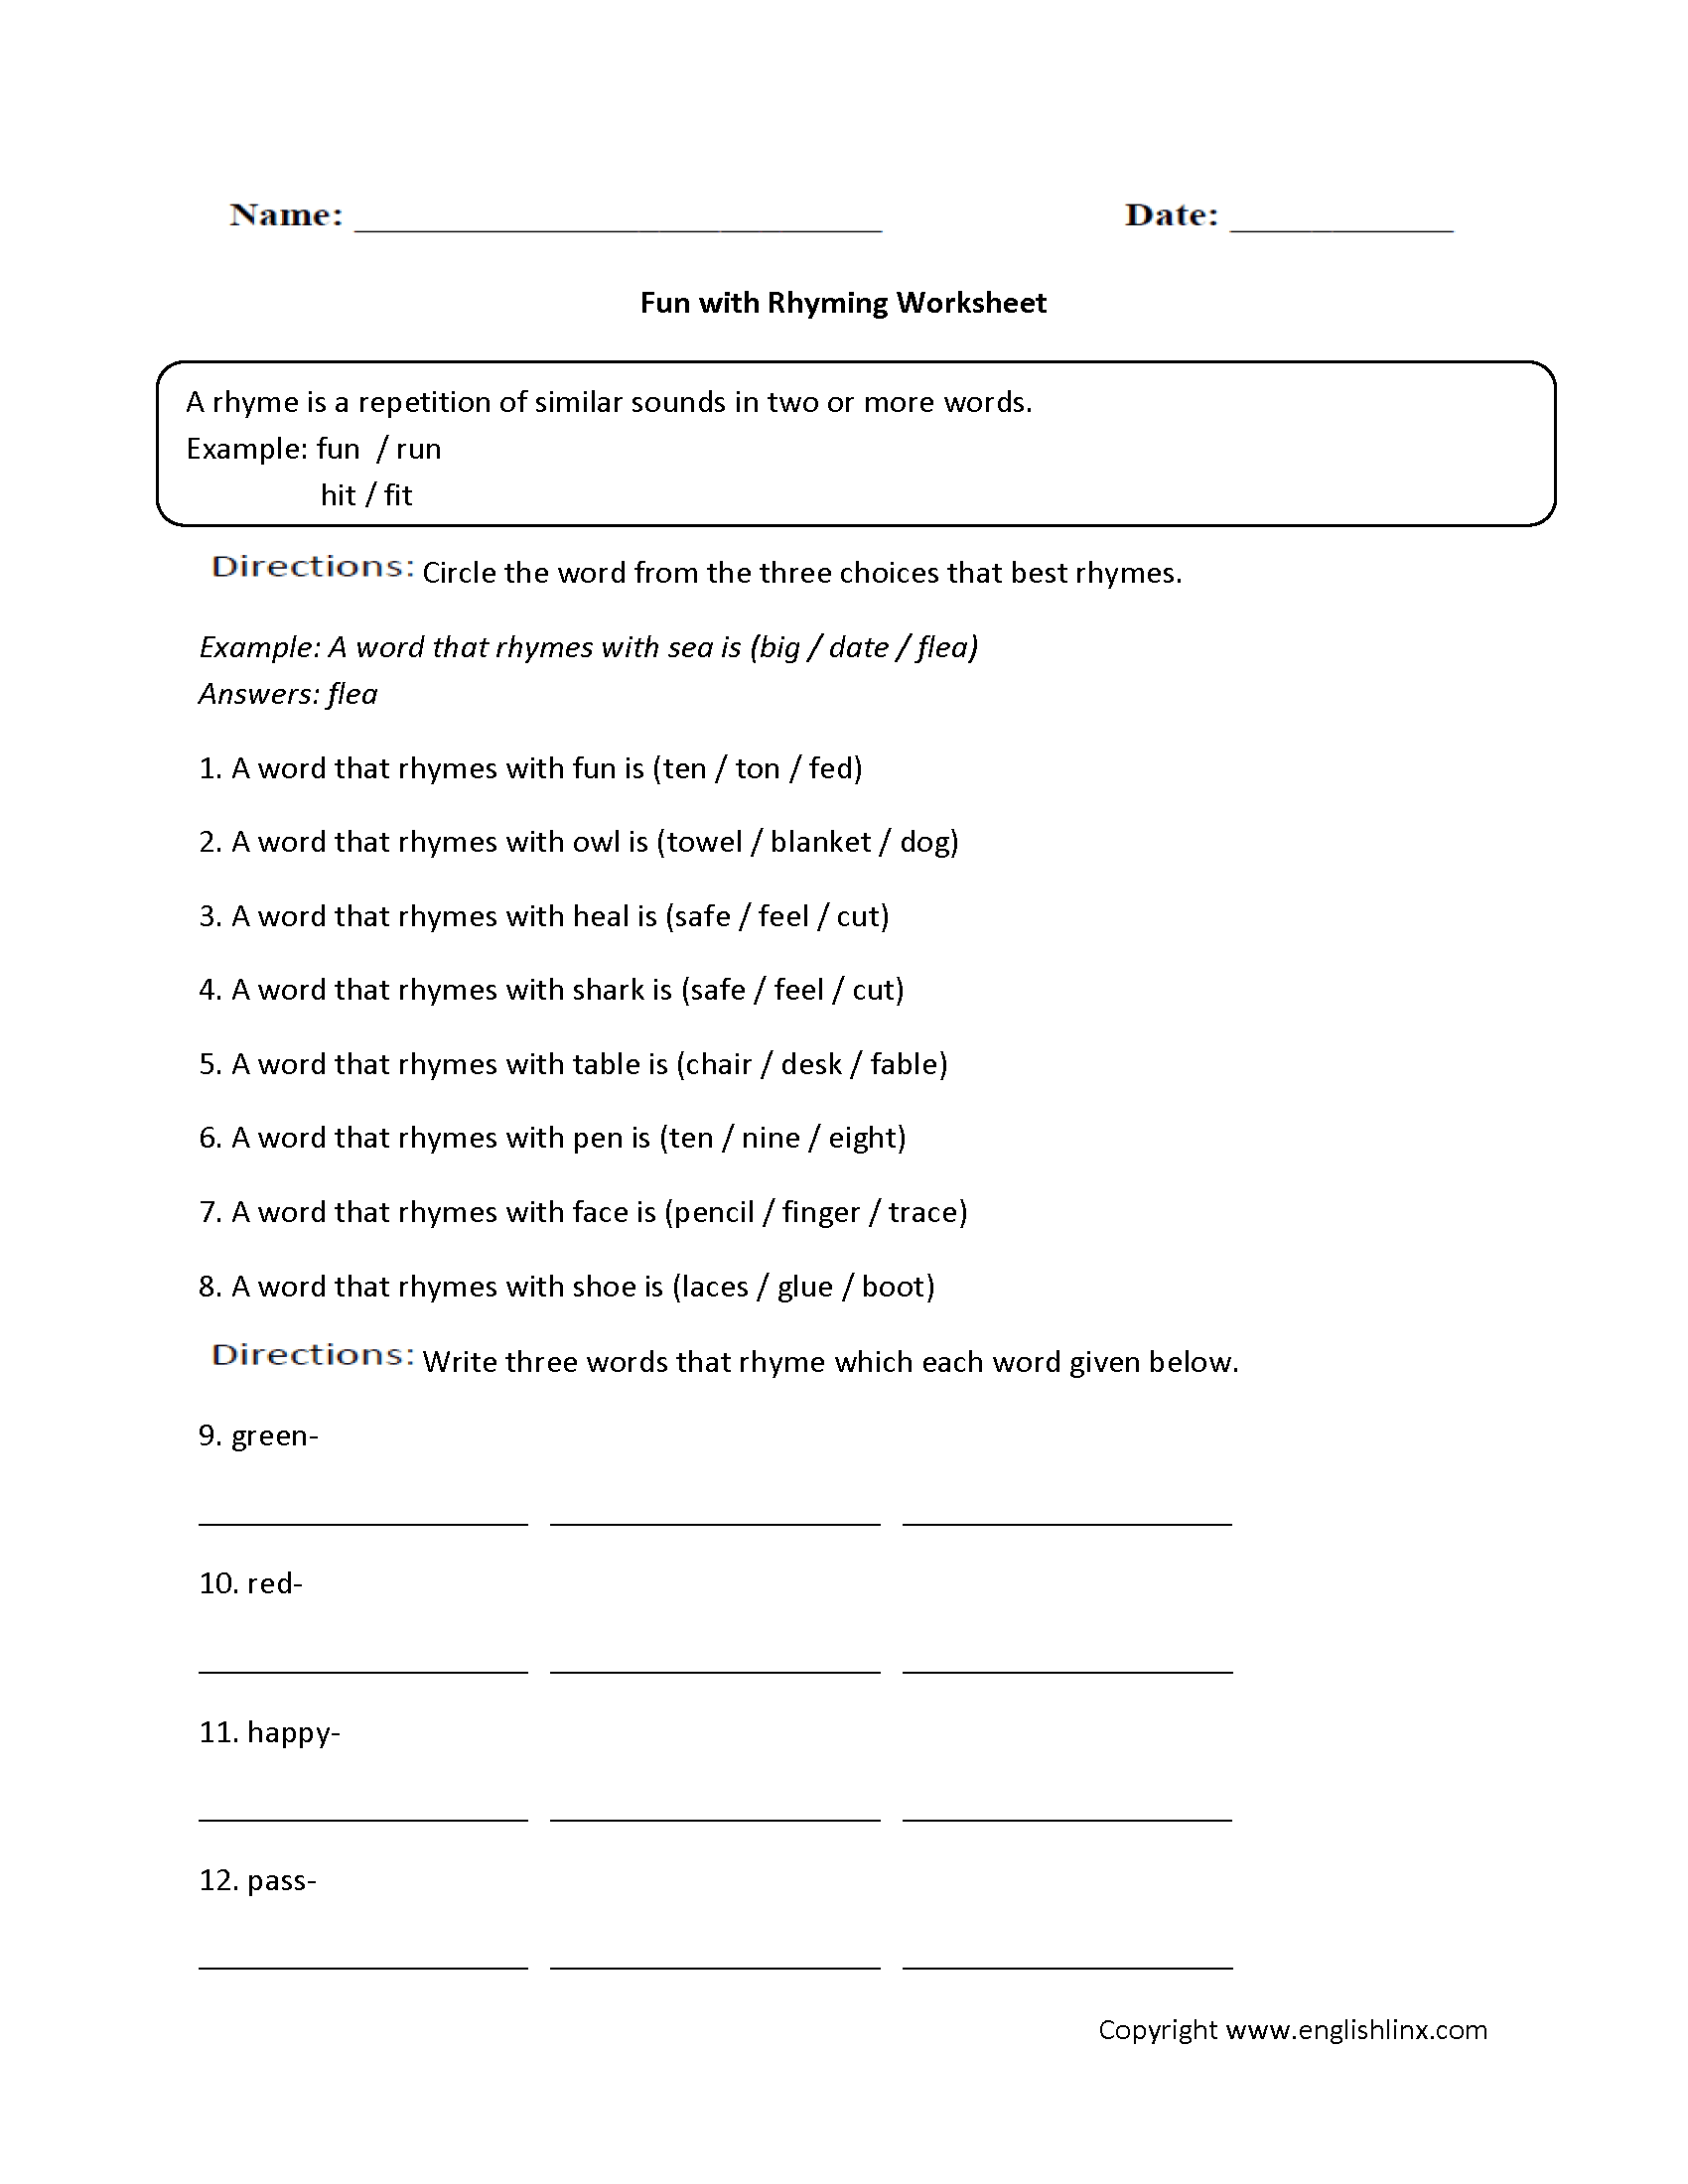 Printables Rhyming Worksheets englishlinx com rhyming worksheets fun with worksheet